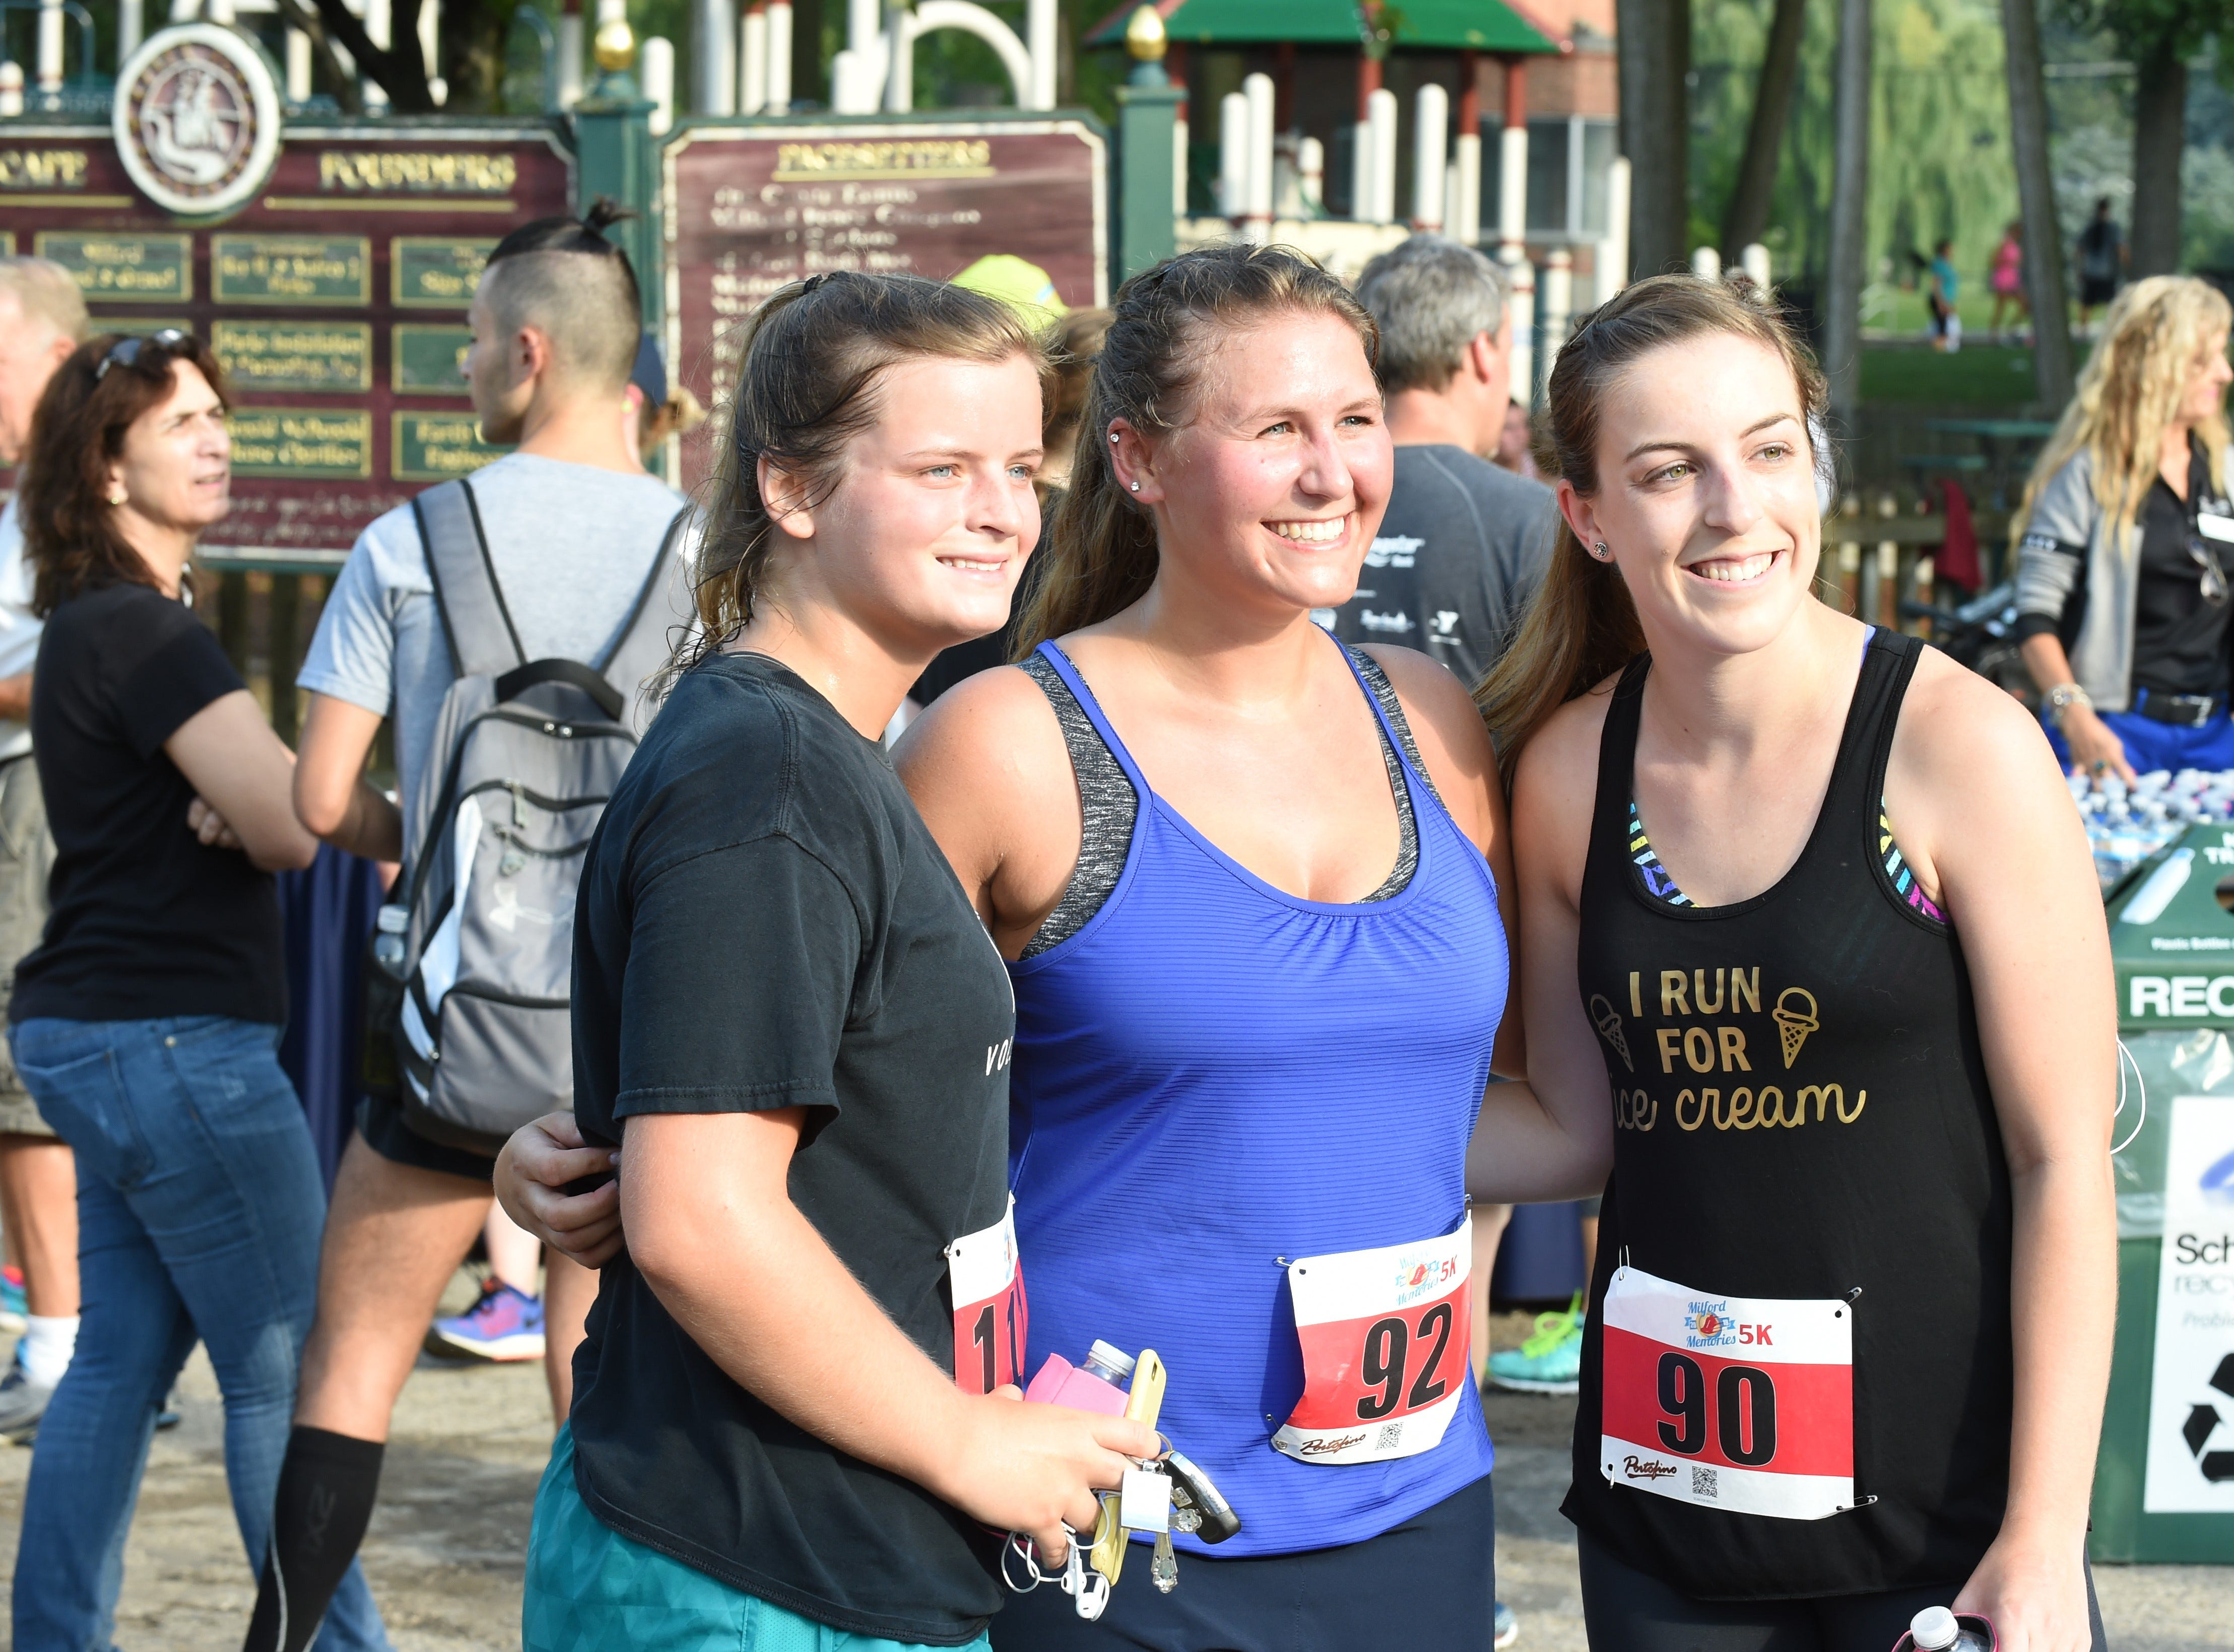 Lifetime friends, Abbi Hill, Samantha Simmons and Lyndsay Mahar take a photo after participating in the 5K run in Milford.